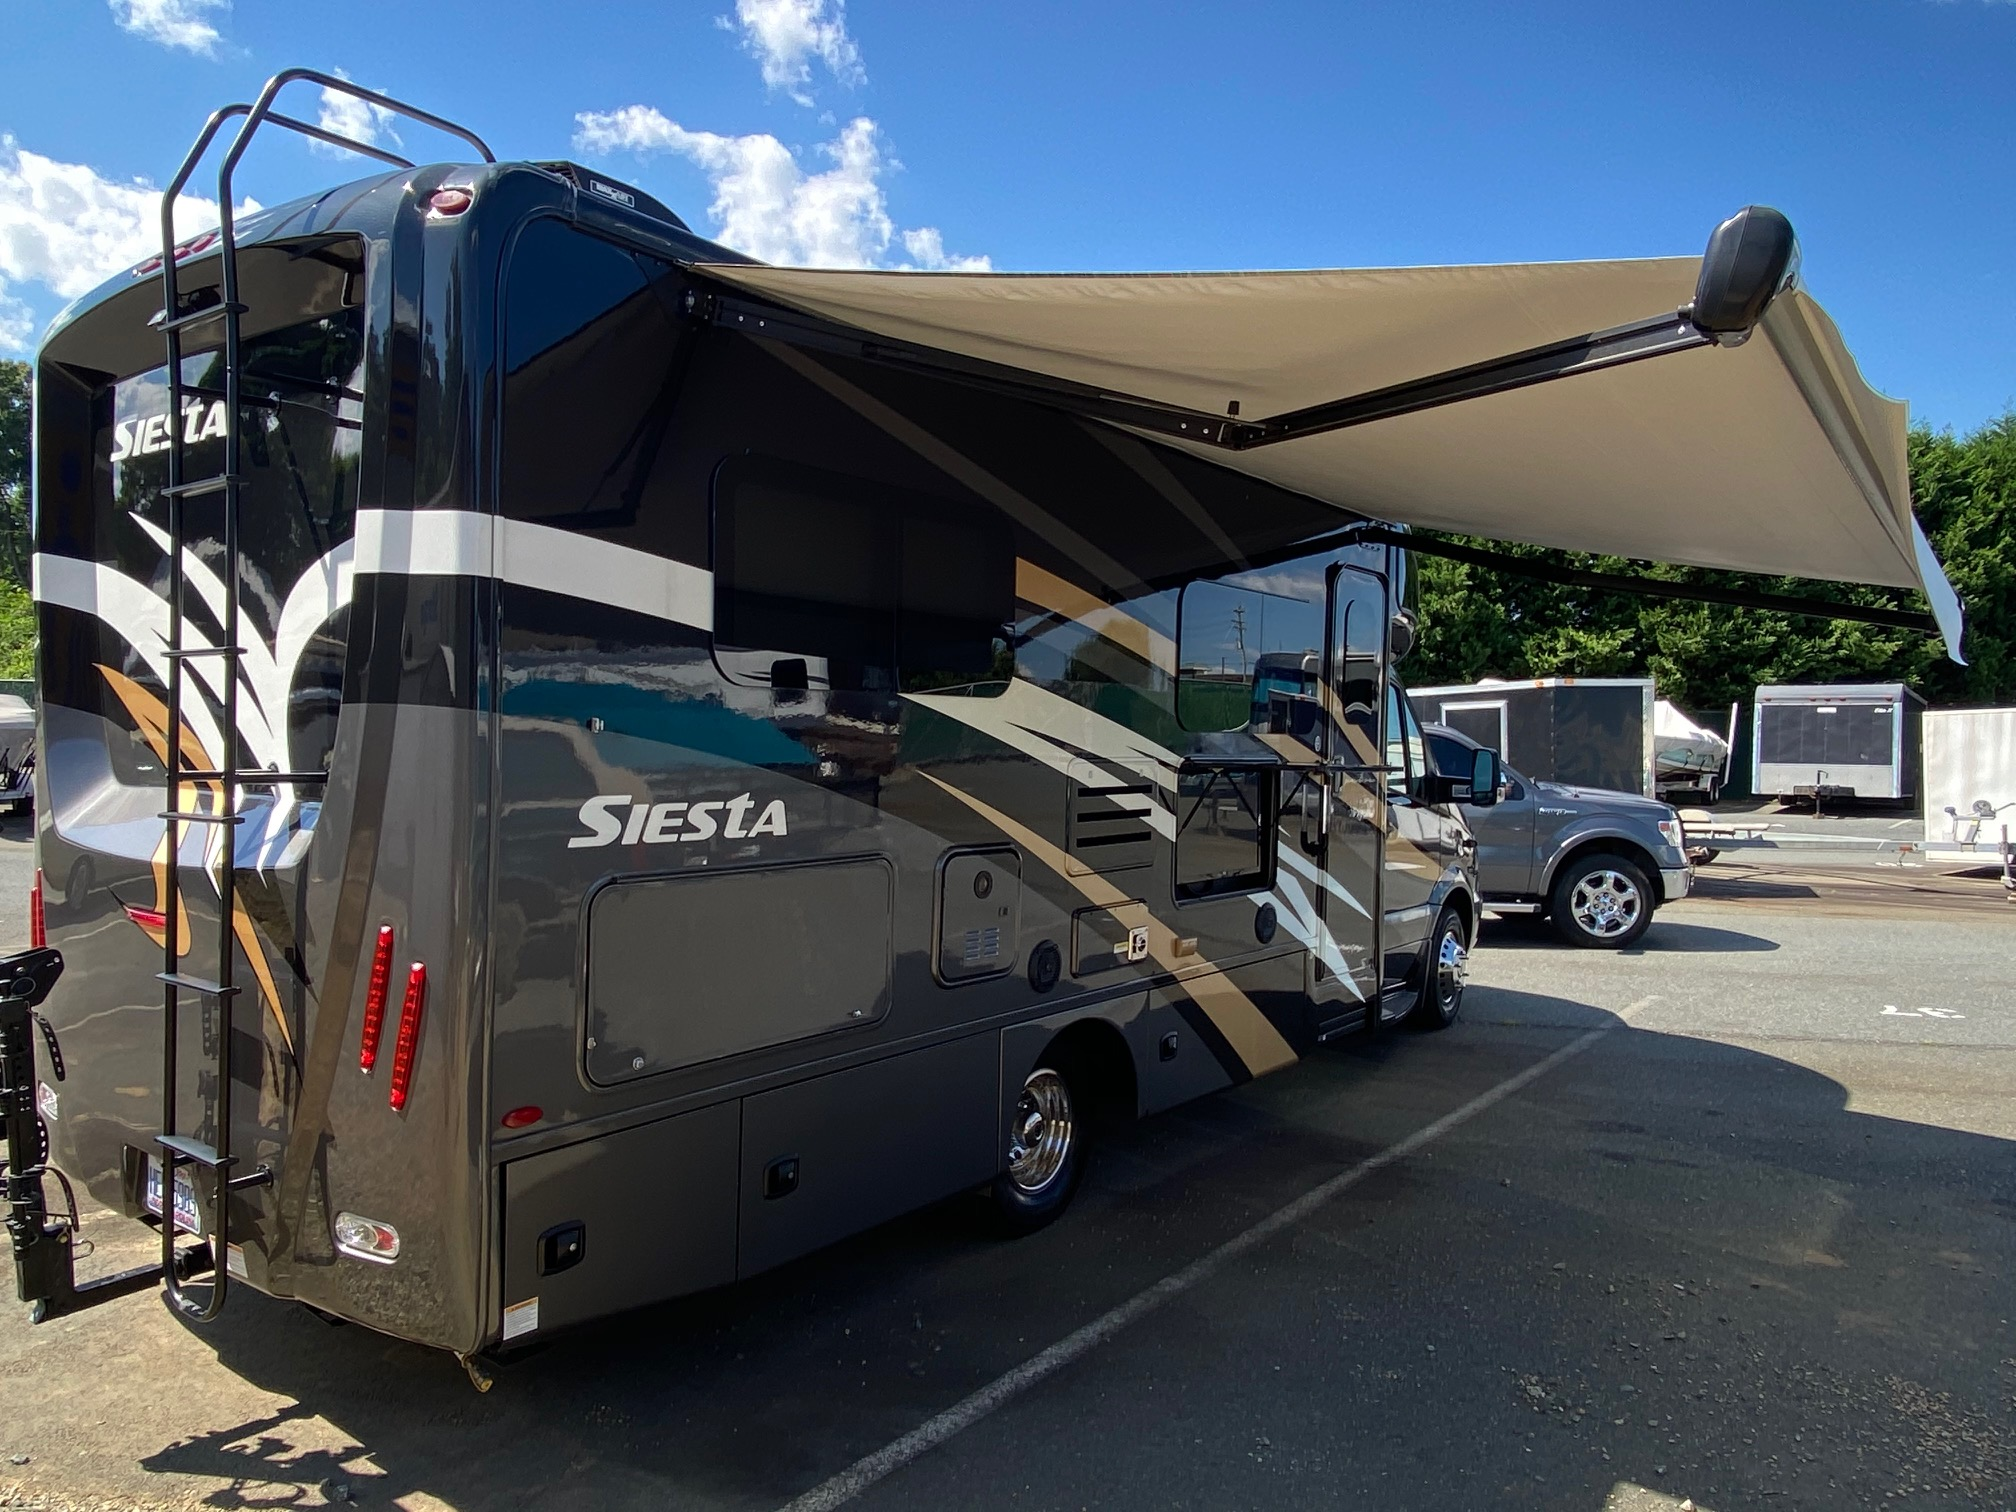 Awning and Outside TV. ThorMotorCoach Siesta 2018